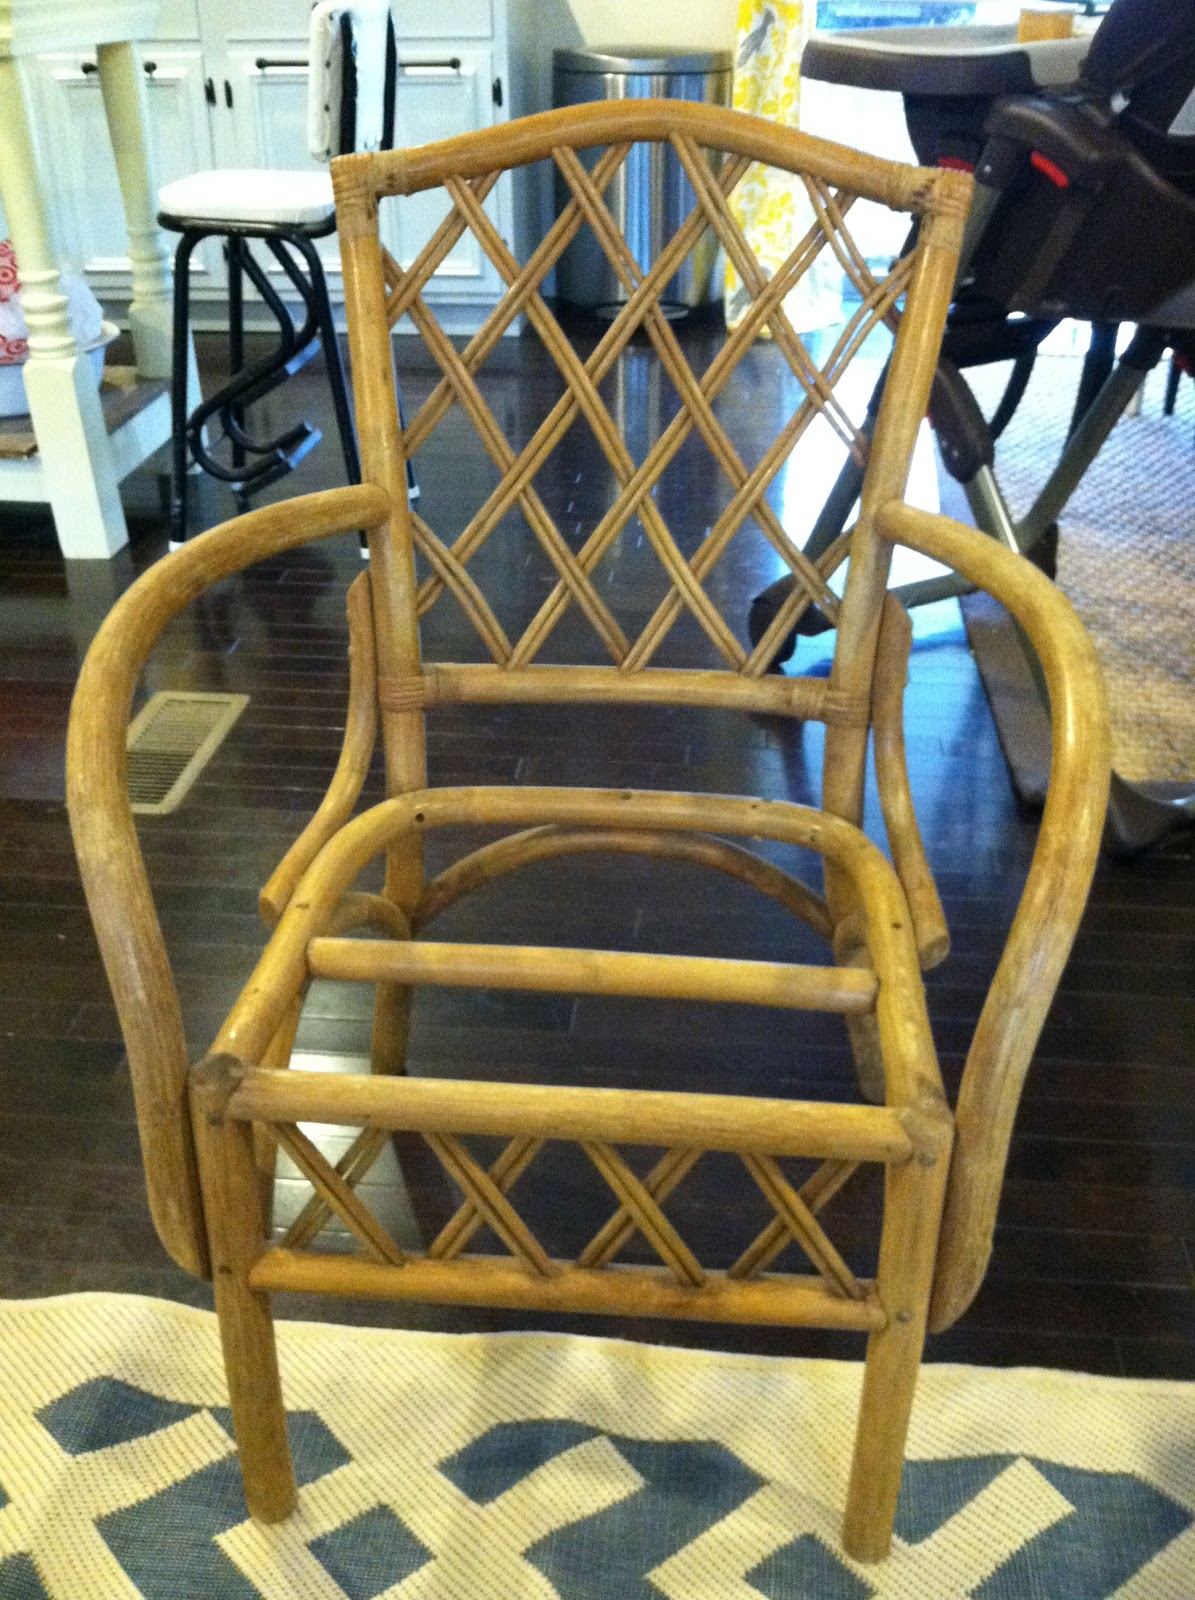 Dallas Furniture By Owner Craigslist Share The Knownledge